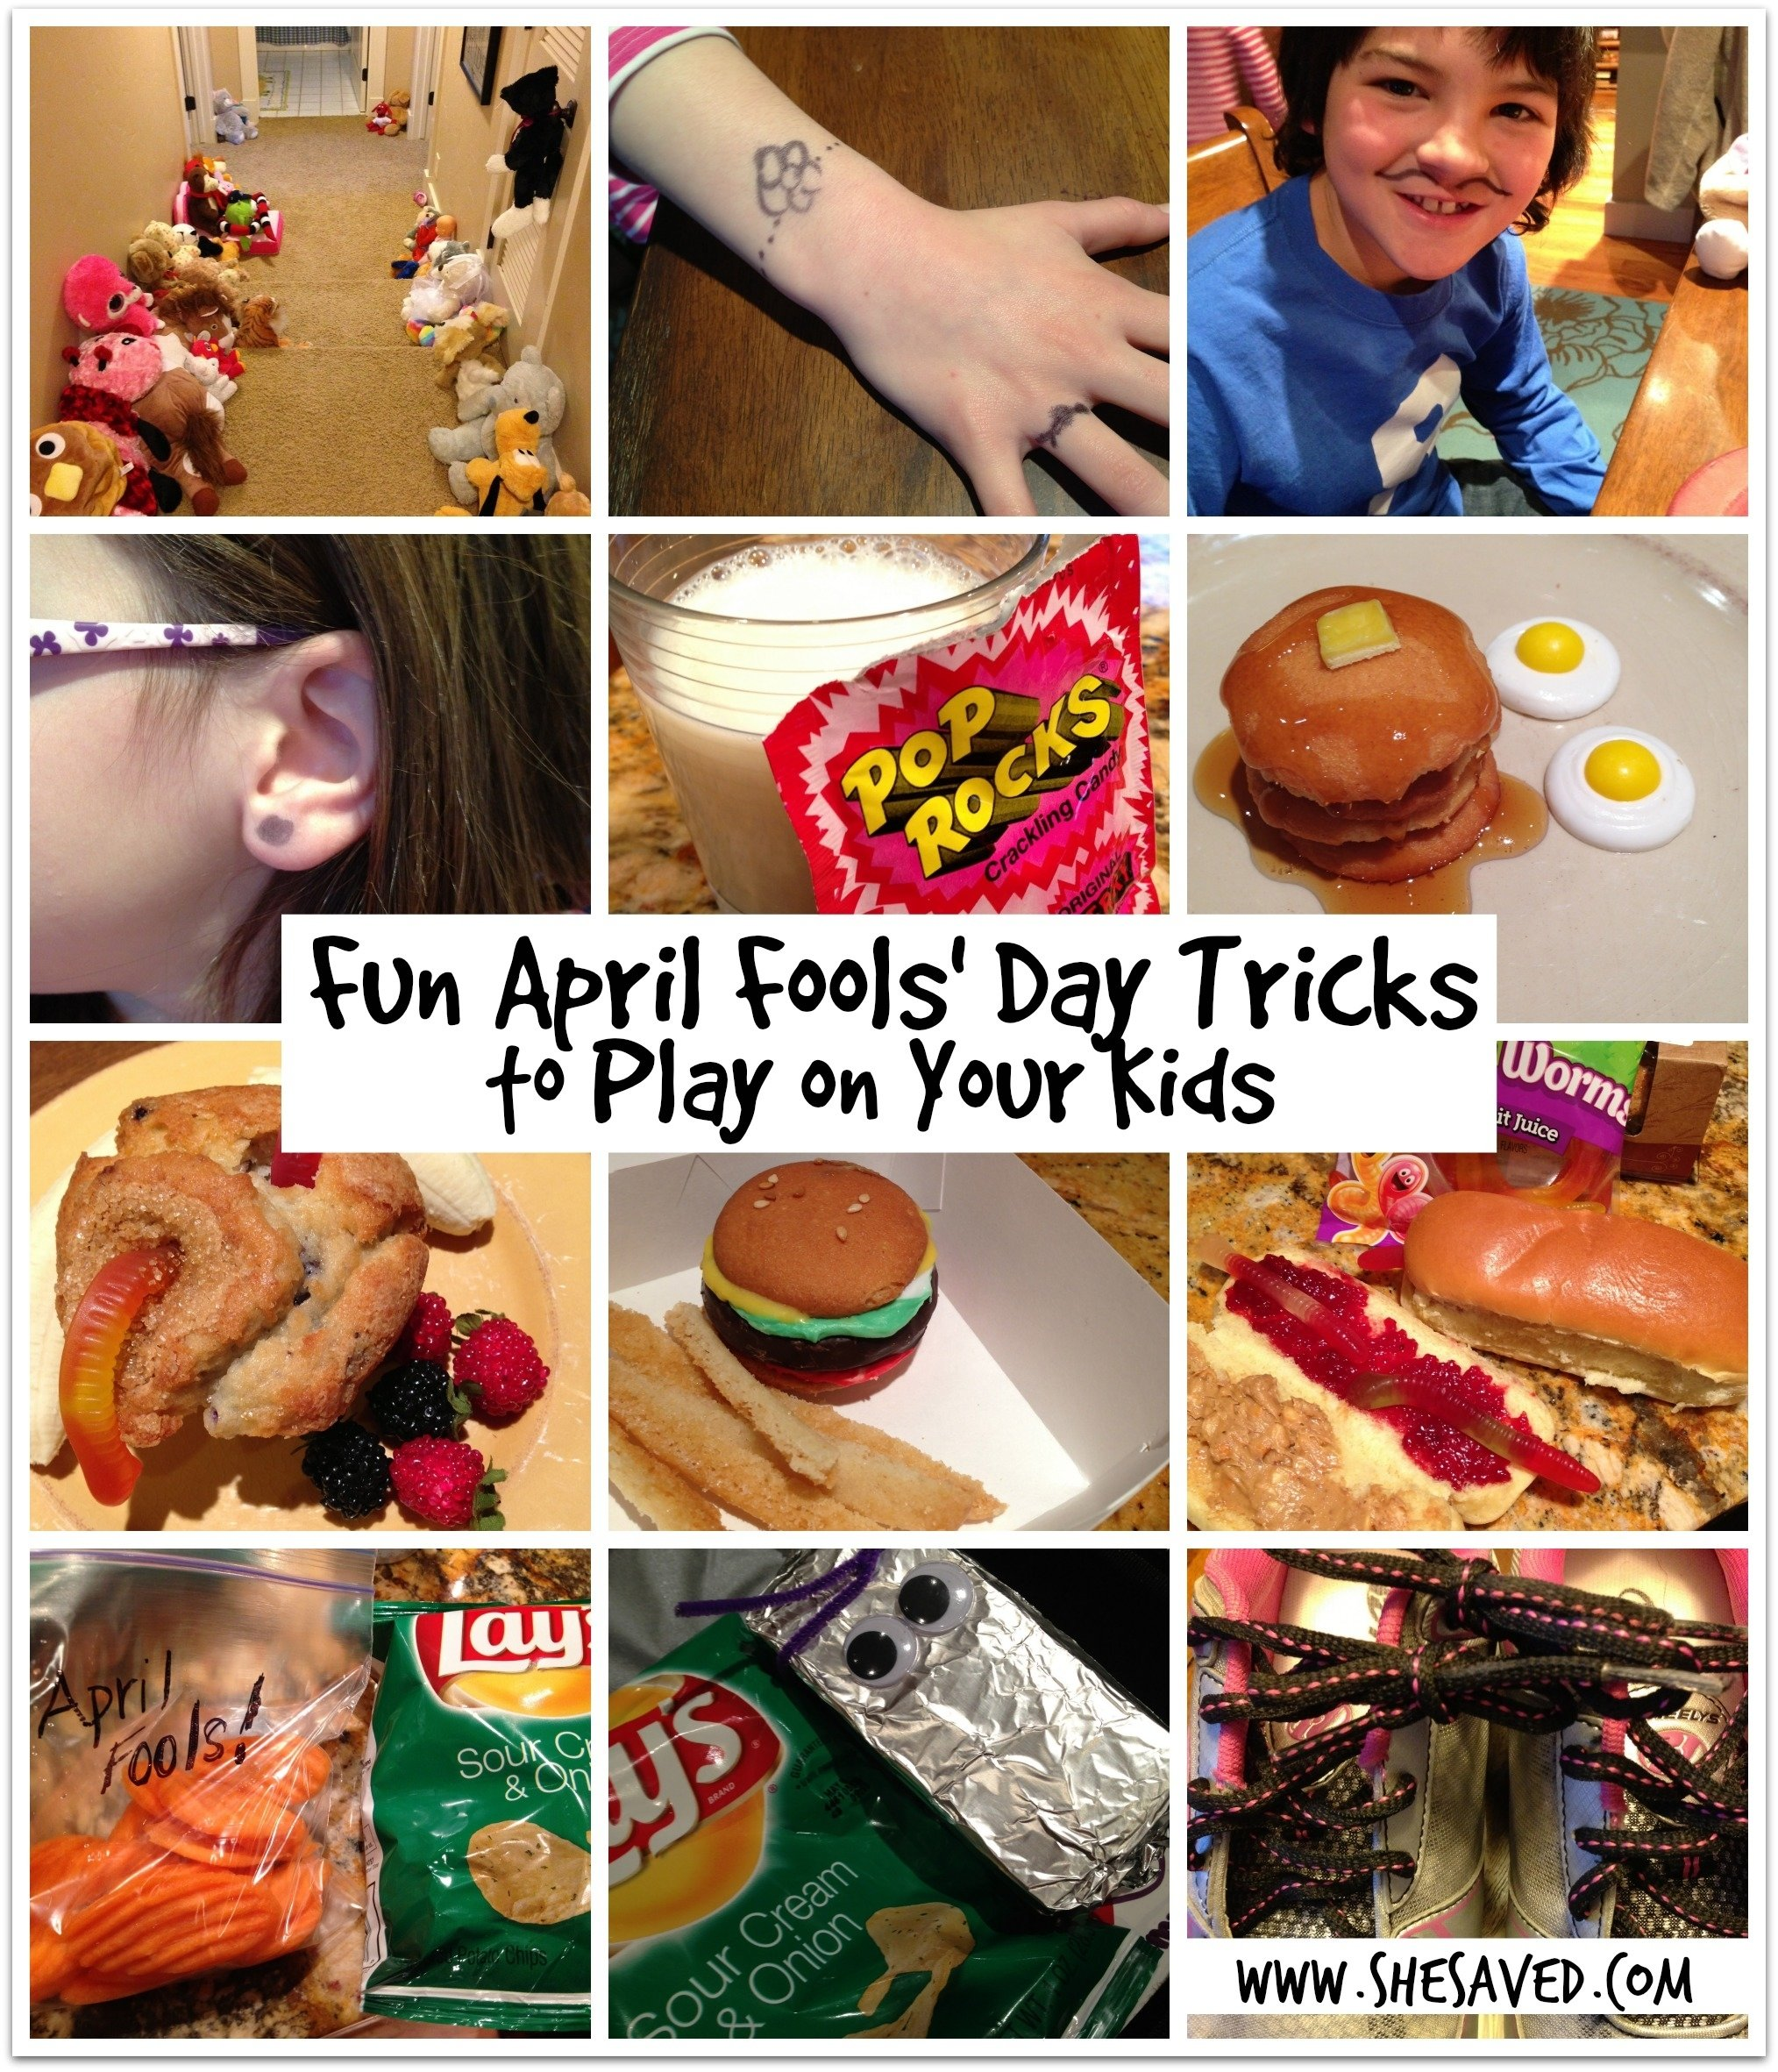 10 Fabulous Ideas For April Fools Day april fools day prank ideas shesaved 2021